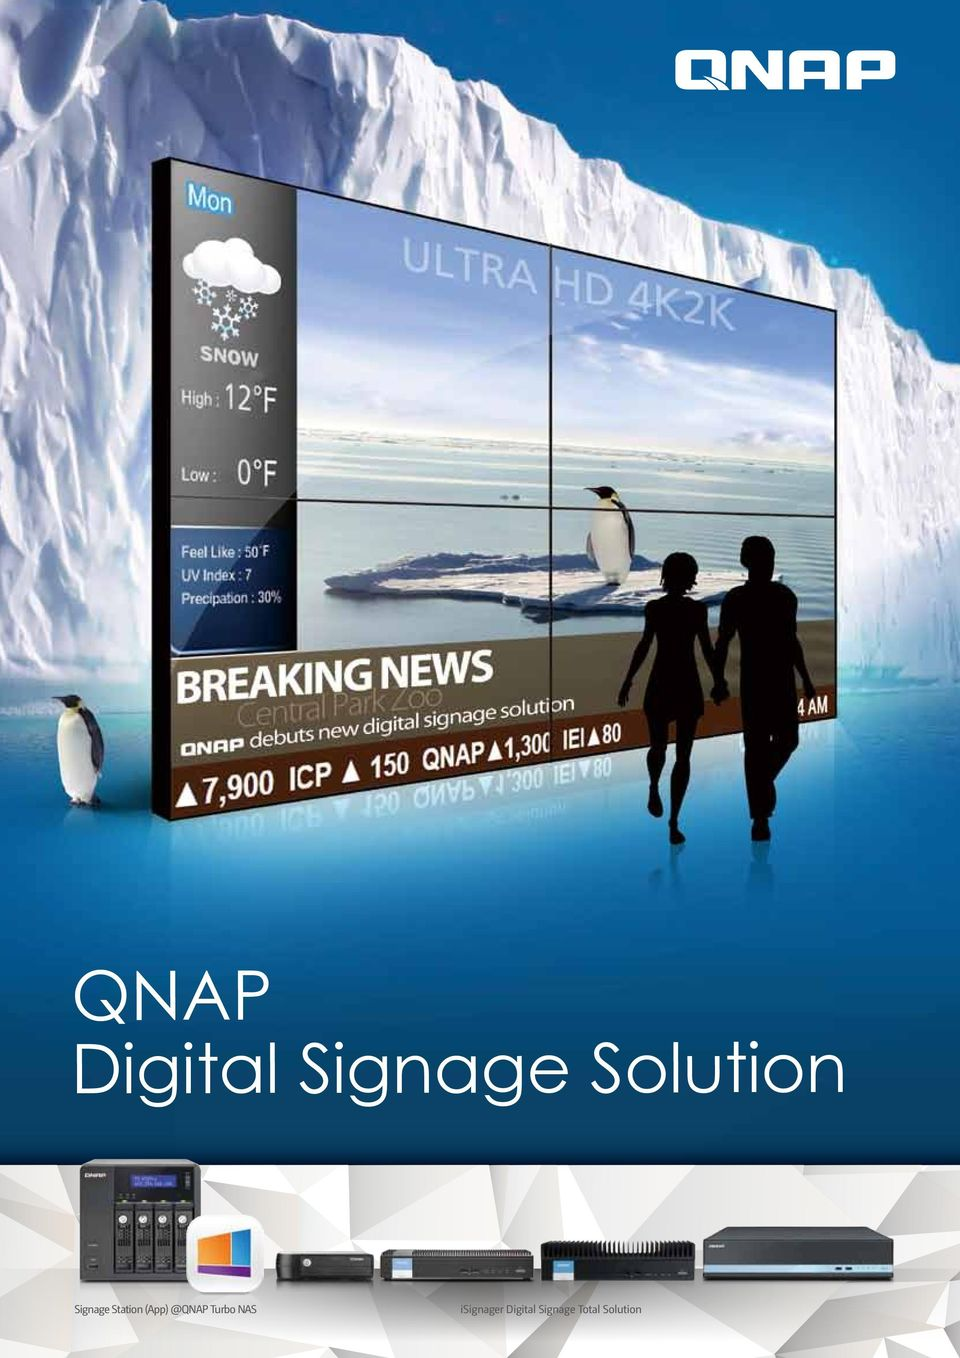 QNAP gives you the best one! Why QNAP Digital Signage solution? HTML